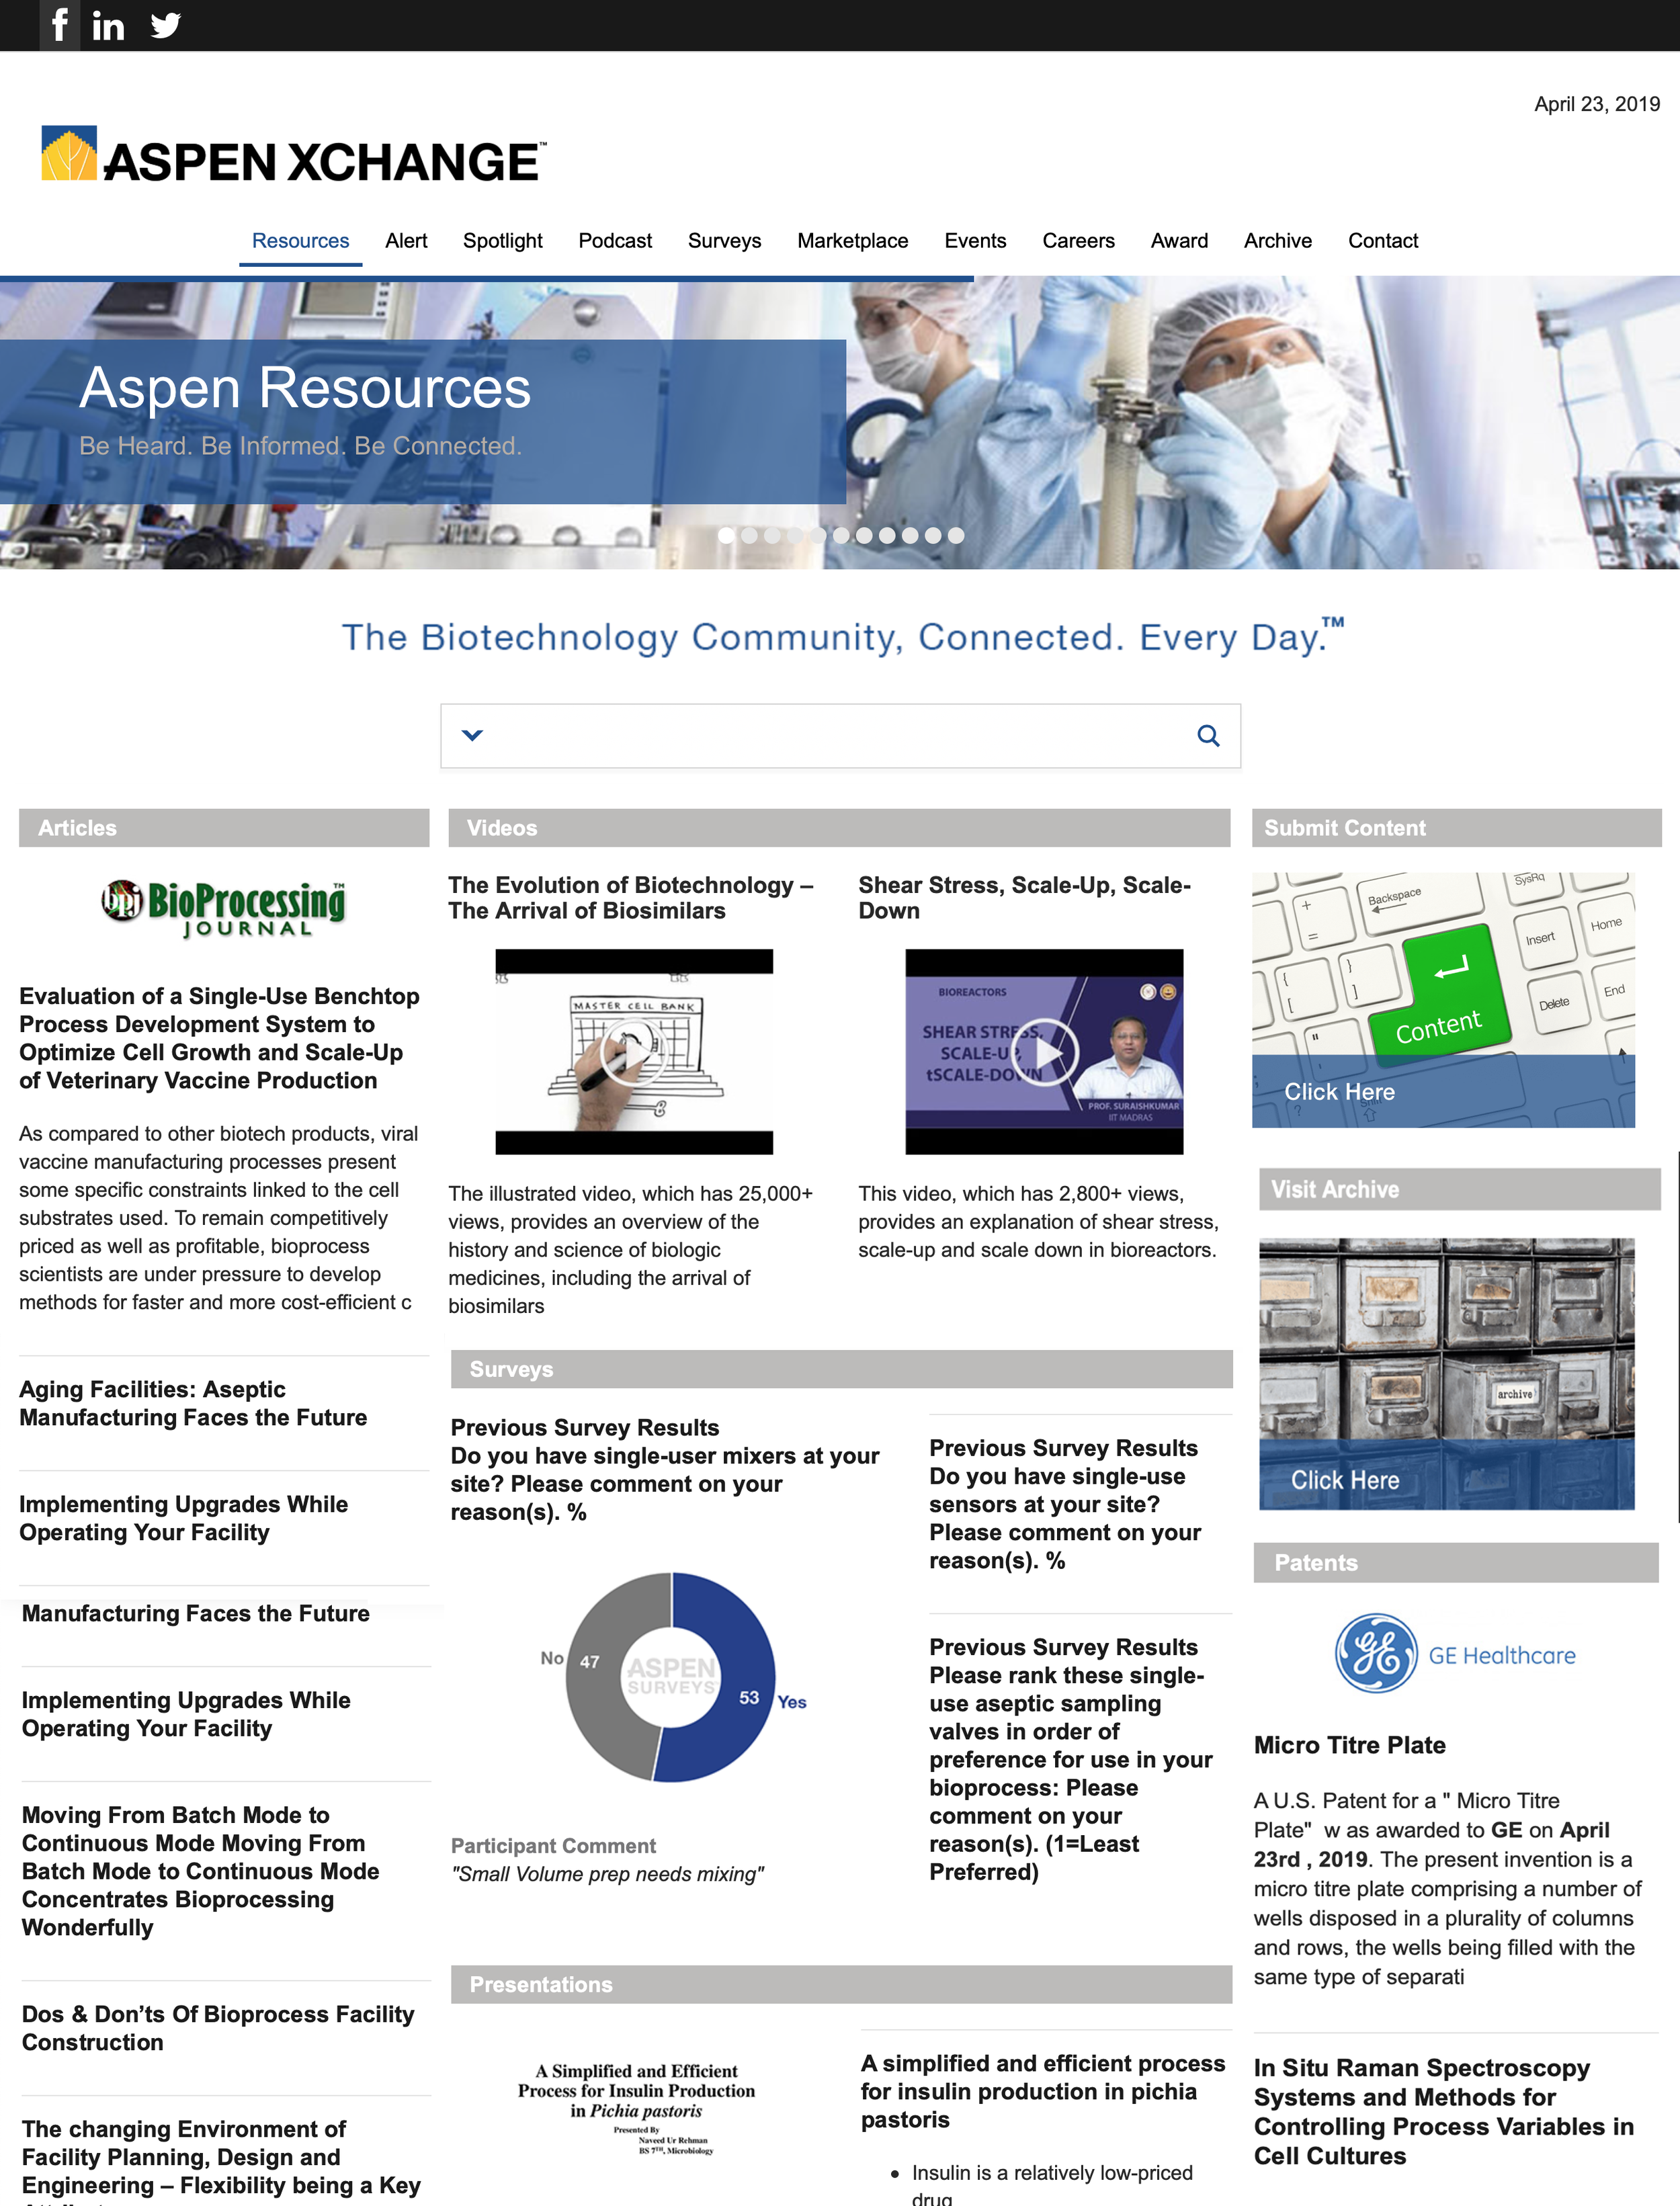 Front Page of the Aspen Xchange, a news and information site for the biotech community